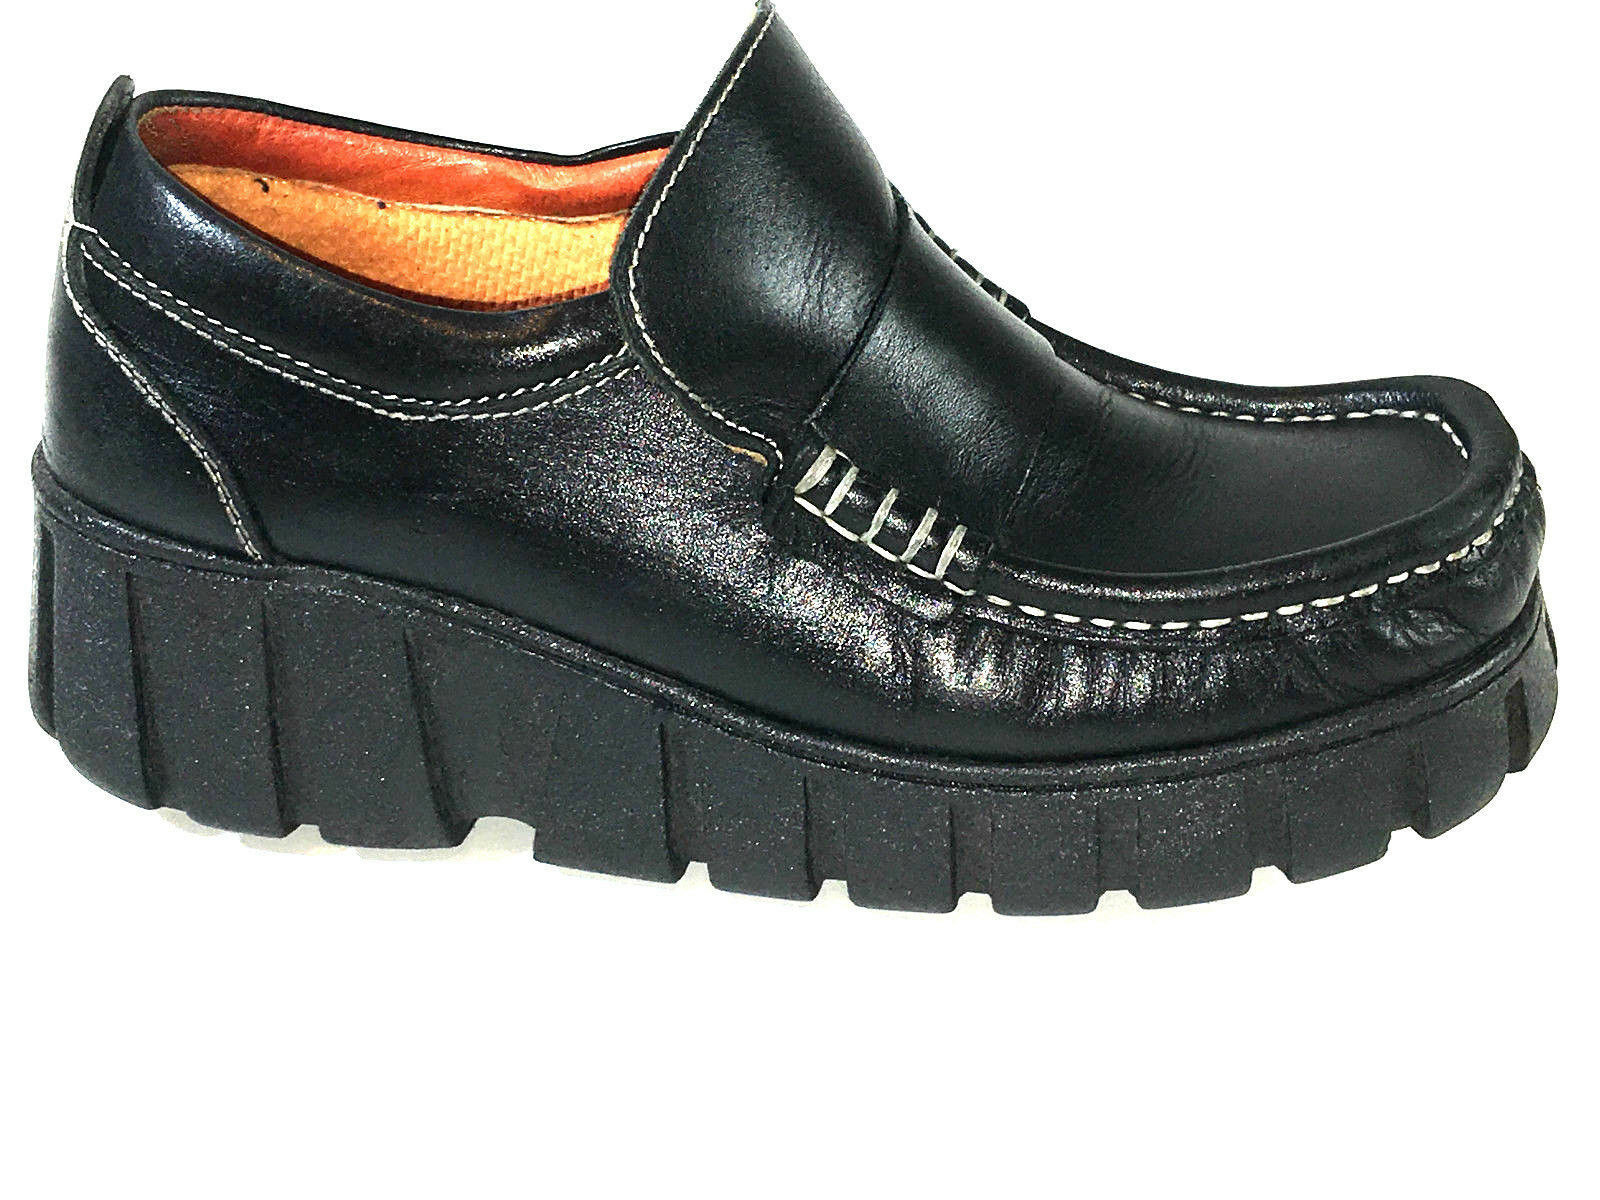 Mag Women's shoes Black Size 37 EUR. Usa.6.5